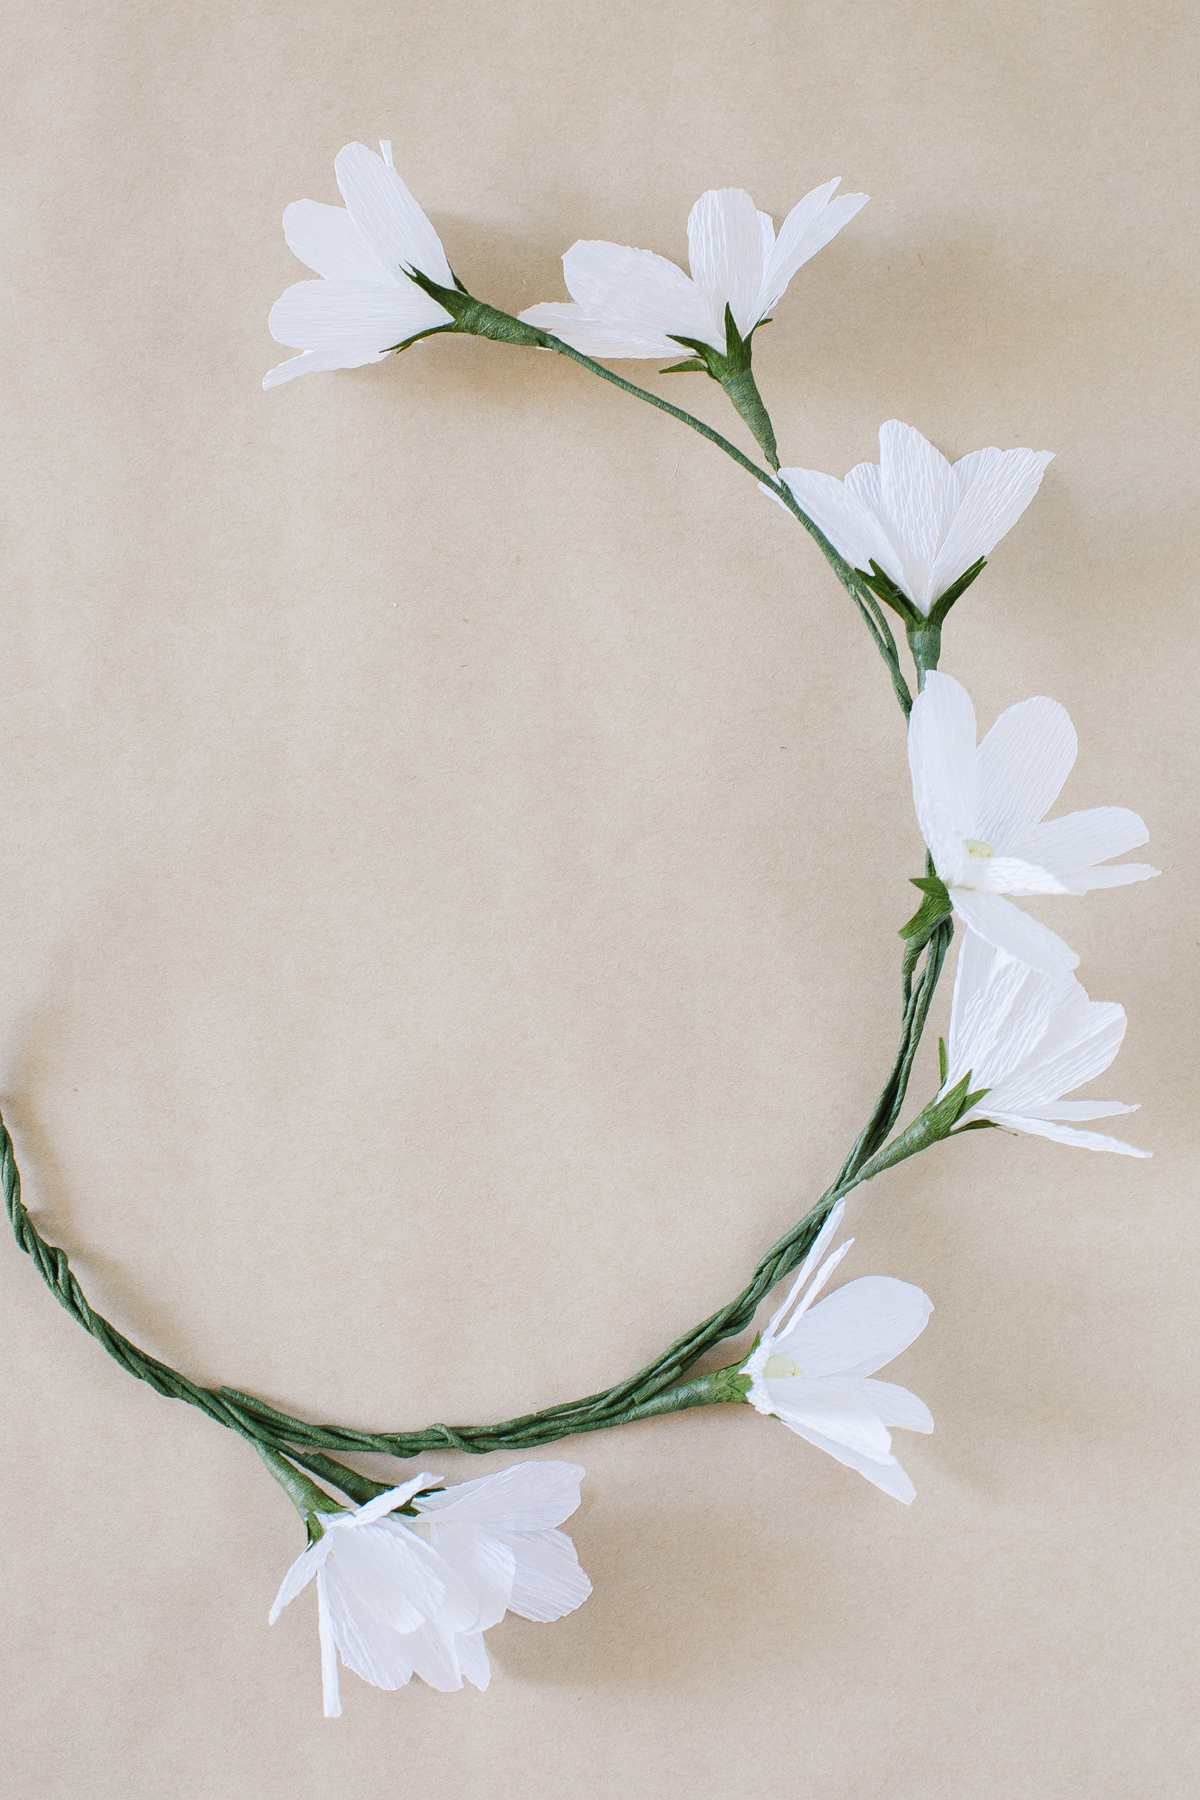 Diy crepe paper daisies with daisy crown monika hibbs if you are attempting a floral crown simply wrap and twist each stem around the next as you would with real blooms space out the daisies based on how izmirmasajfo